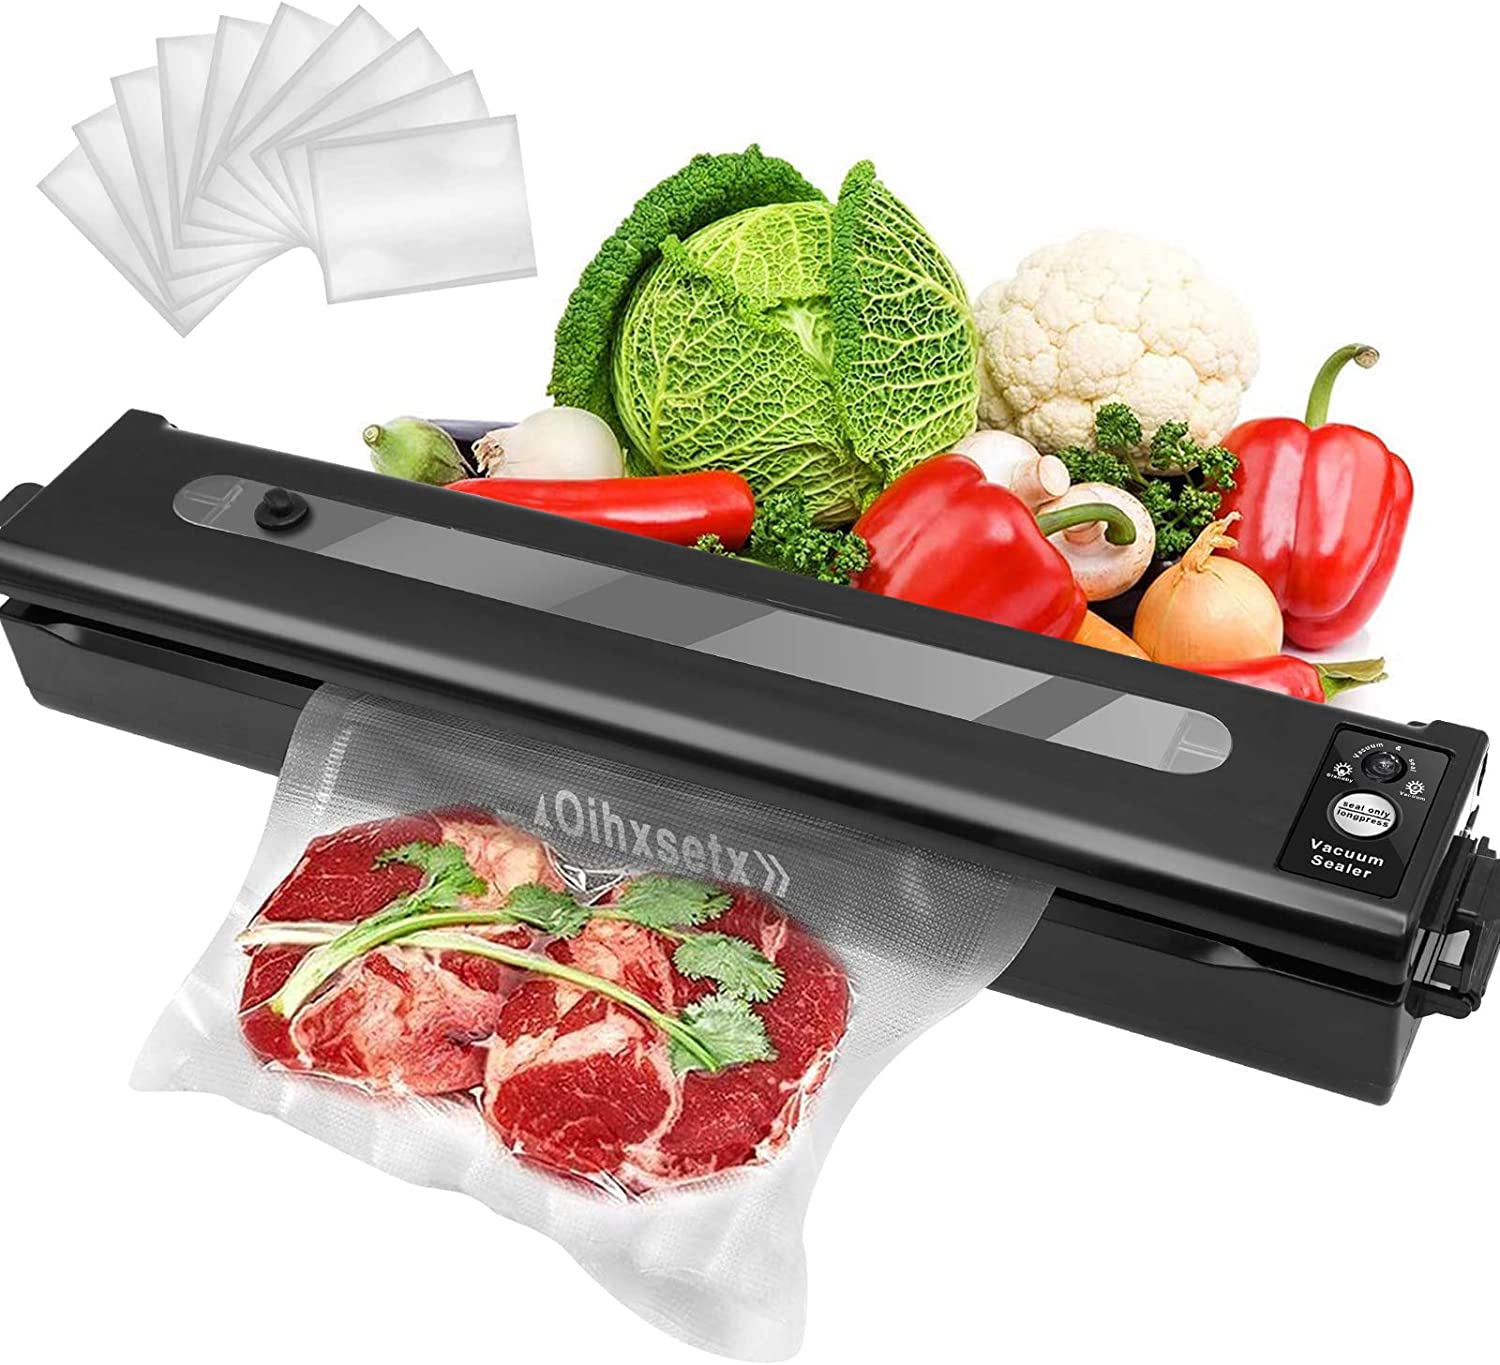 Vacuum Sealer Machine, Automatic Food Saver Machine Sealer with 10 Vacuum Bags, Dry & Moist Food Modes/Easy to Clean/Led Indicator Light/Compact Design